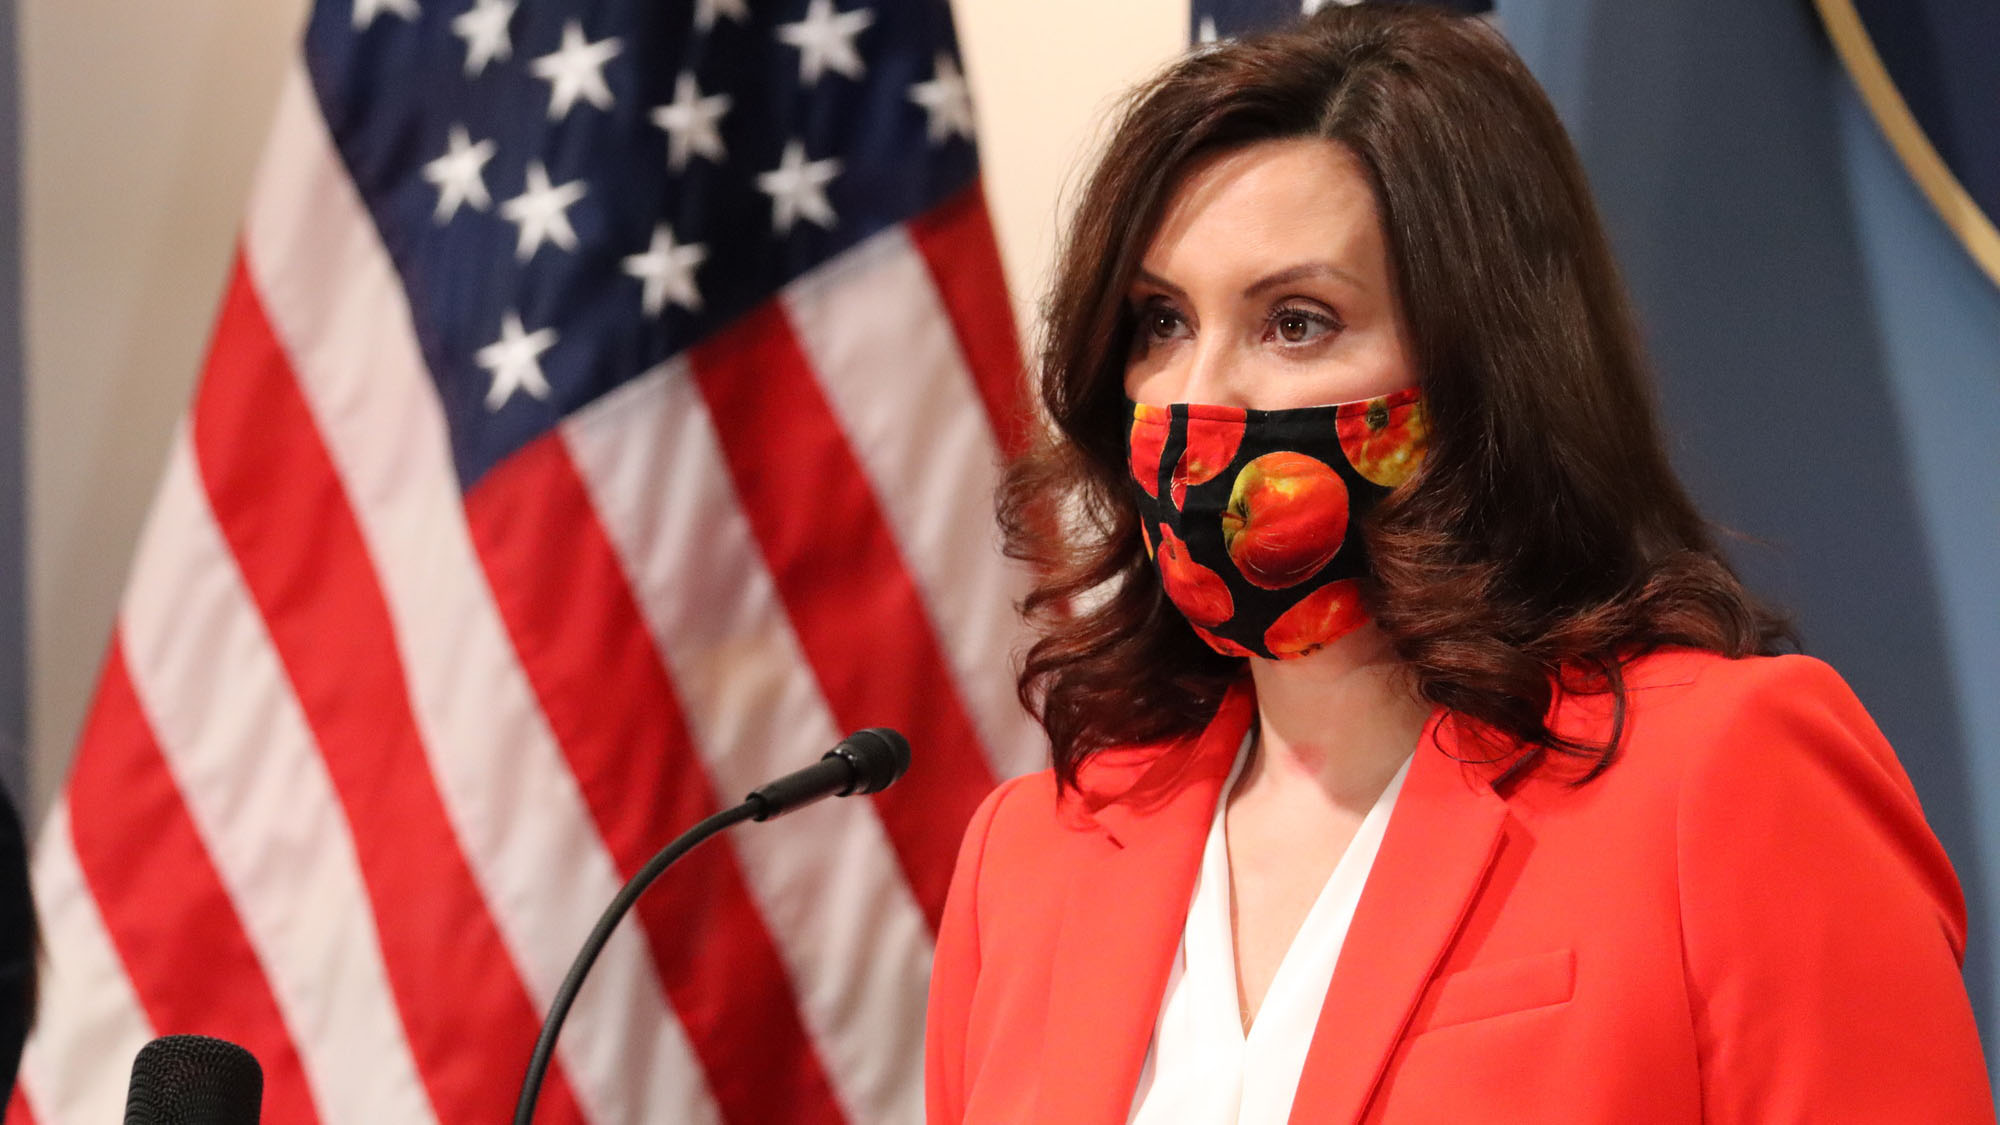 Report: Gretchen Whitmer Used Private Jet Borrowed From Billionaires To Travel To Florida During COVID Crisis